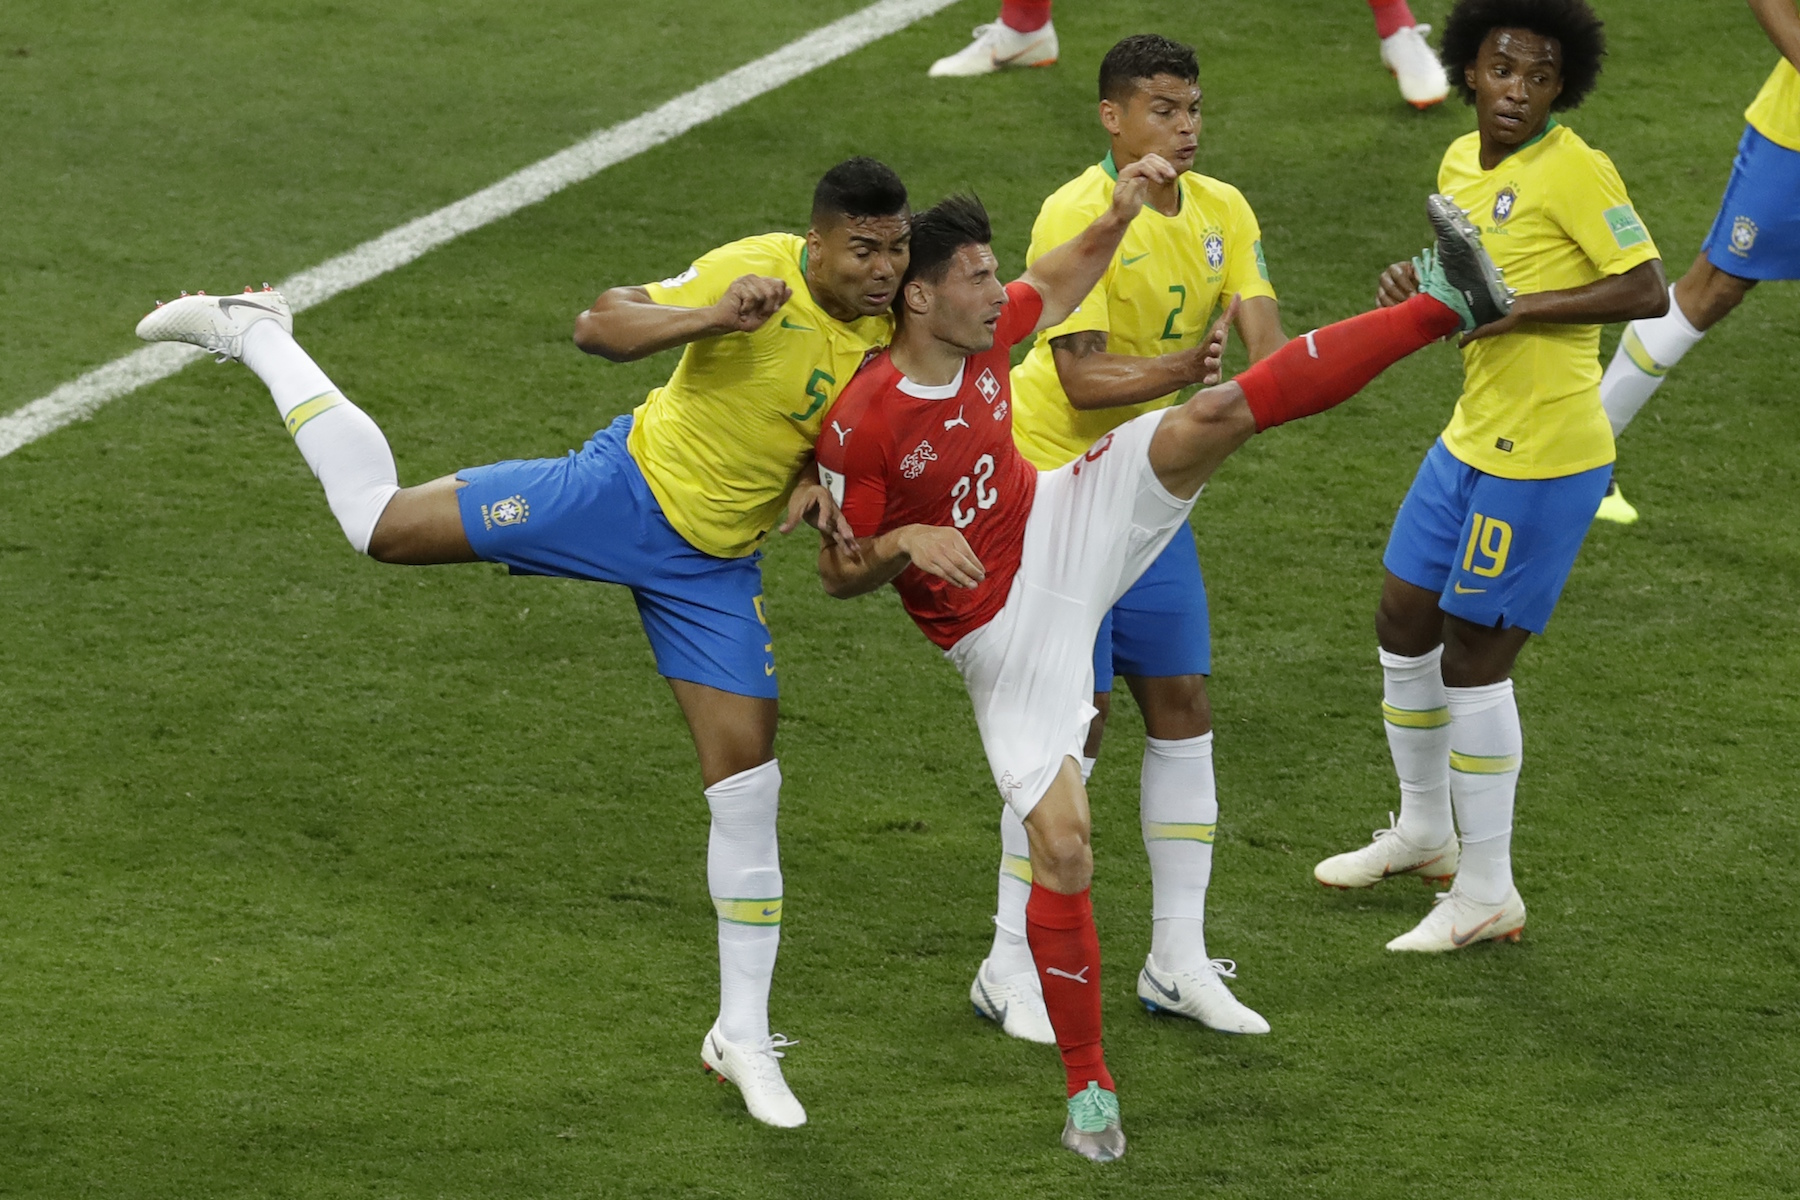 "<div class=""meta image-caption""><div class=""origin-logo origin-image ap""><span>AP</span></div><span class=""caption-text"">Brazil's Casemiro, left, and Switzerland's Fabian Schaer collide during the group E match between Brazil and Switzerland at the 2018 soccer World Cup. (AP Photo/Andrew Medichini)</span></div>"